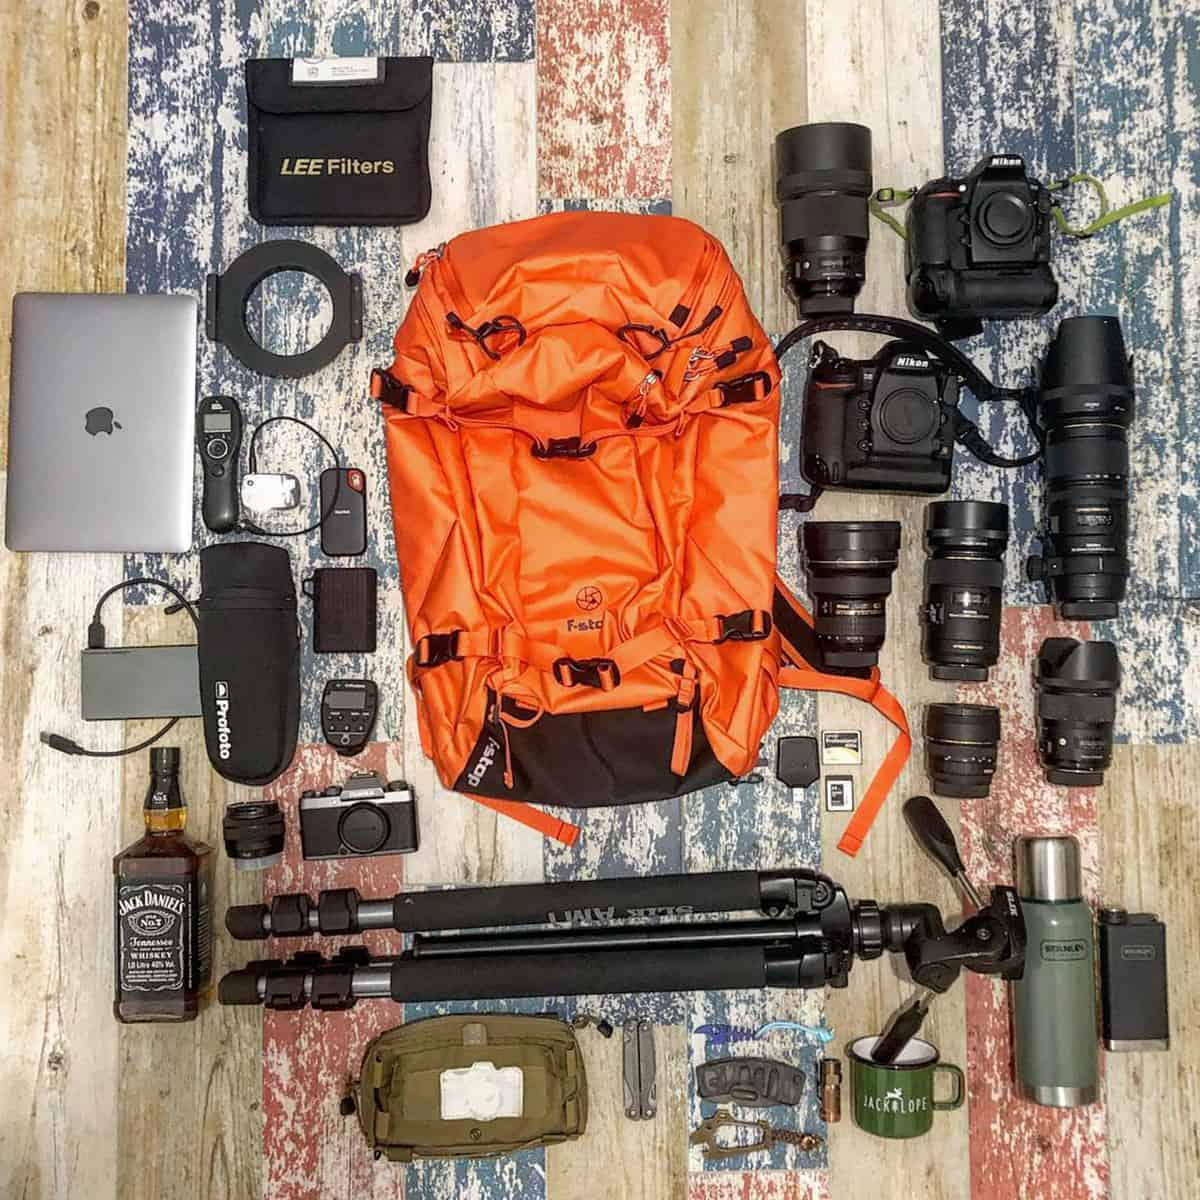 Loadout: F-stop Travel Gear 42382580_330238984411052_8747490733690352472_n